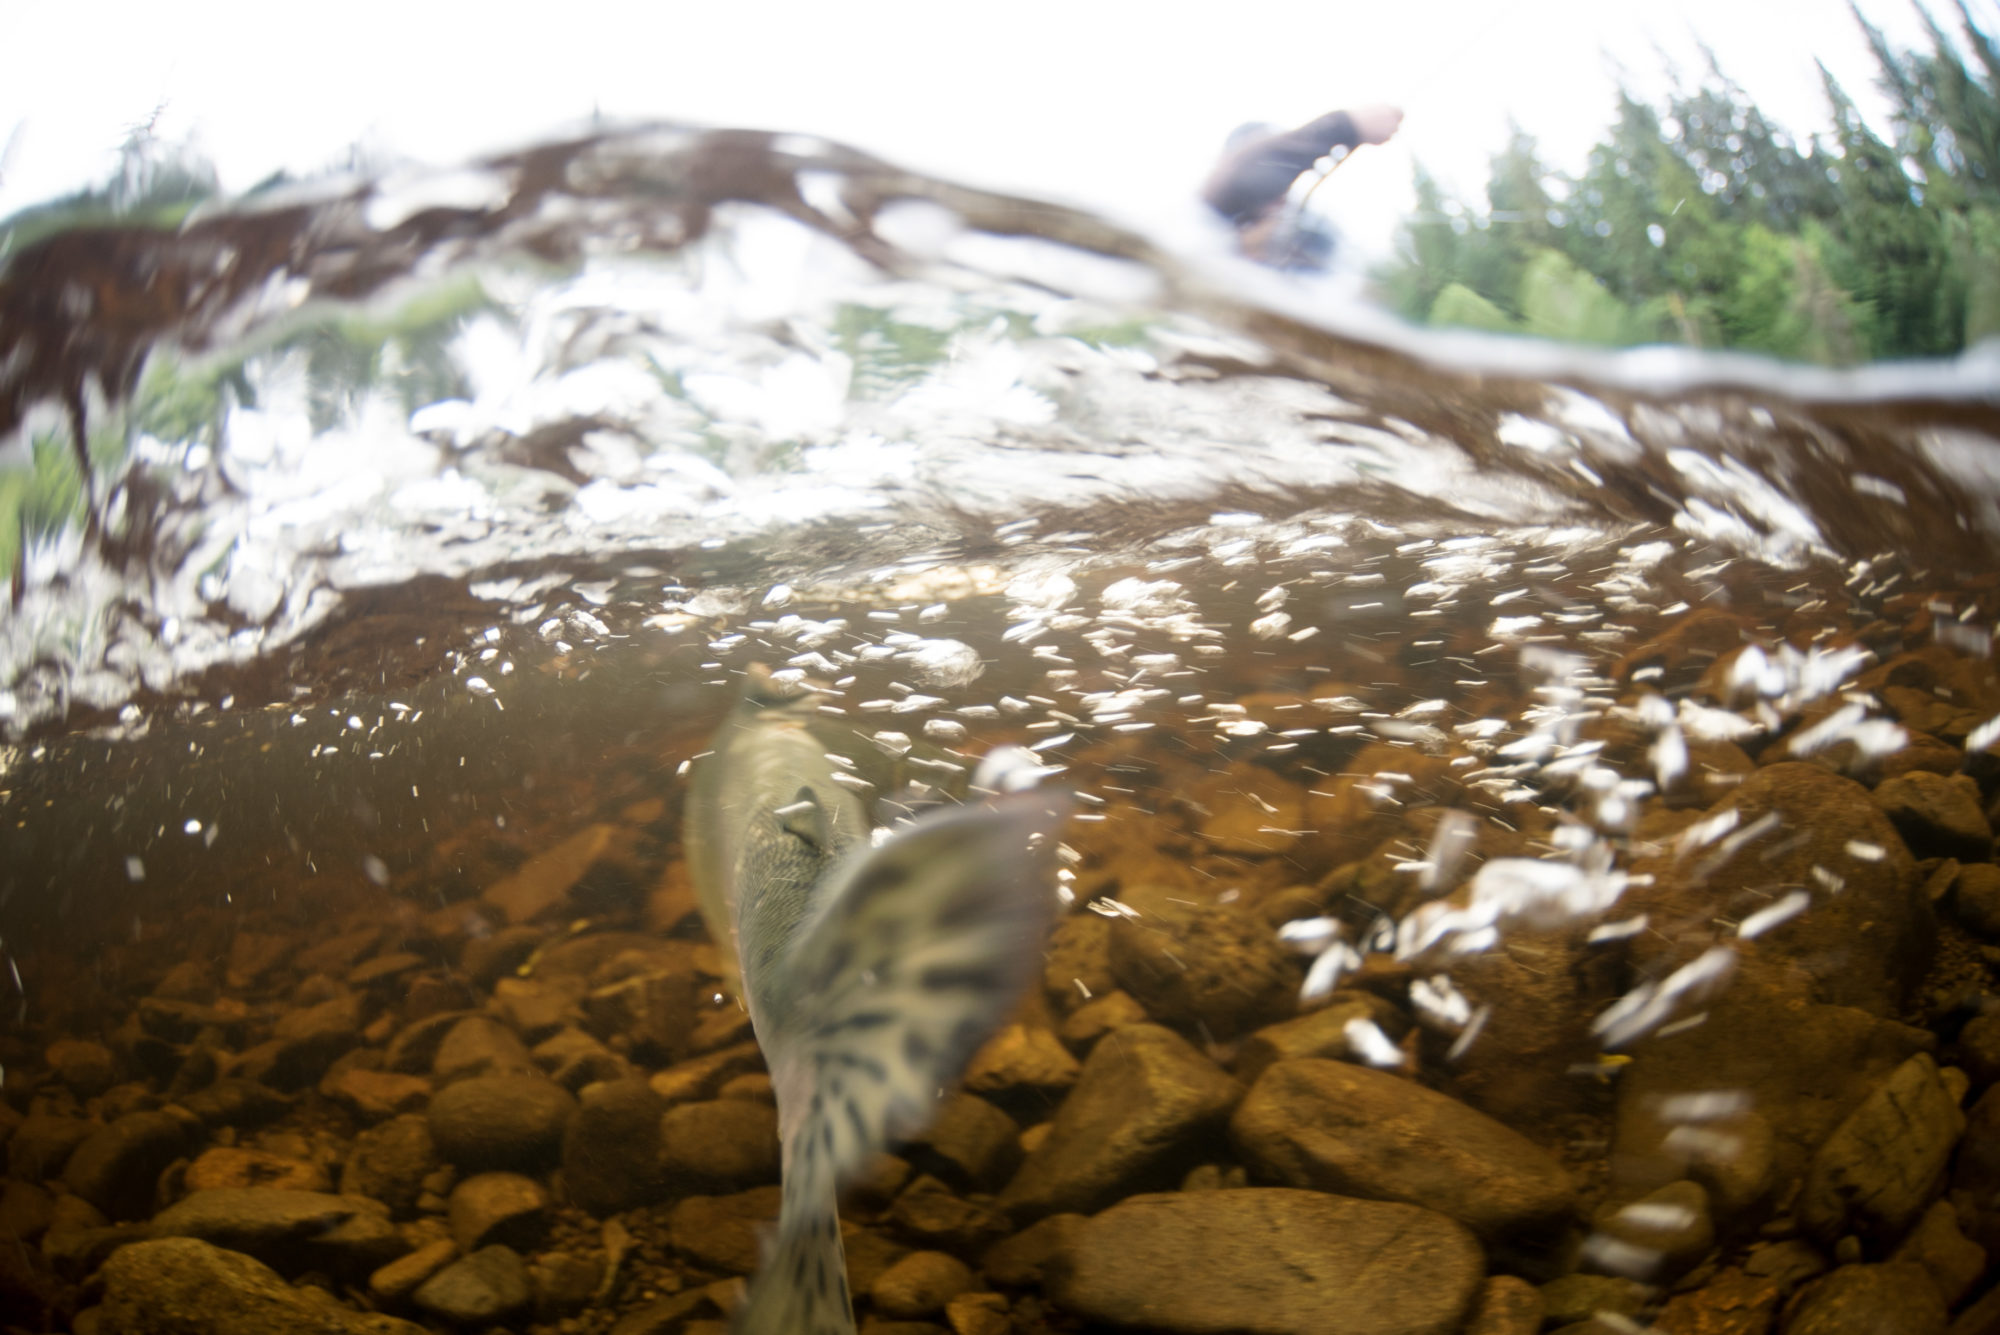 Walker Administration Rejects Salmon Protections, Weakens Law